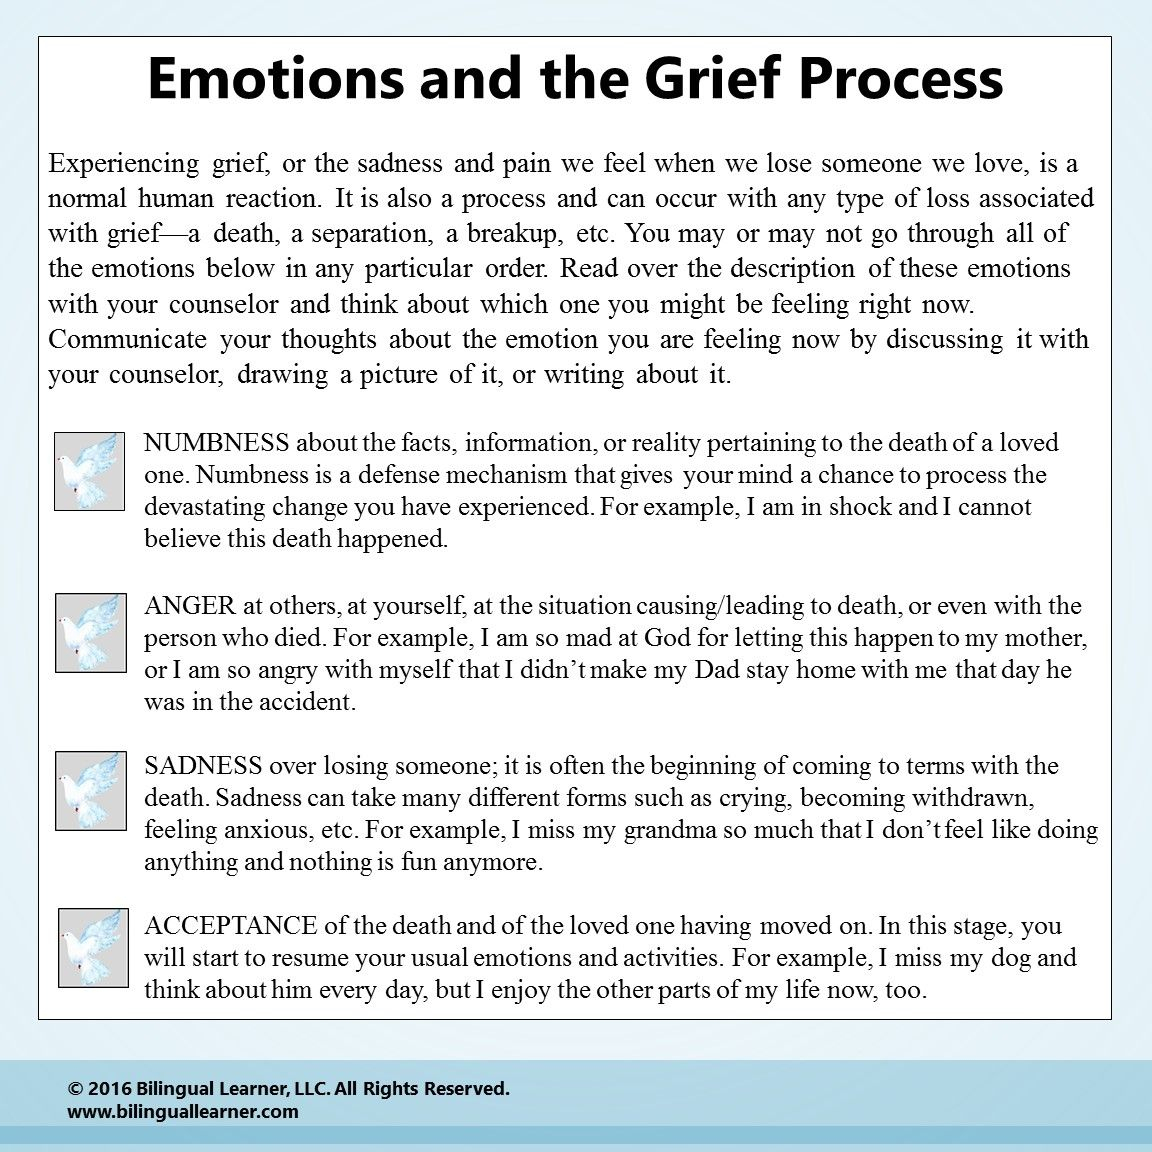 More Grief Resources At Bilinguallearner